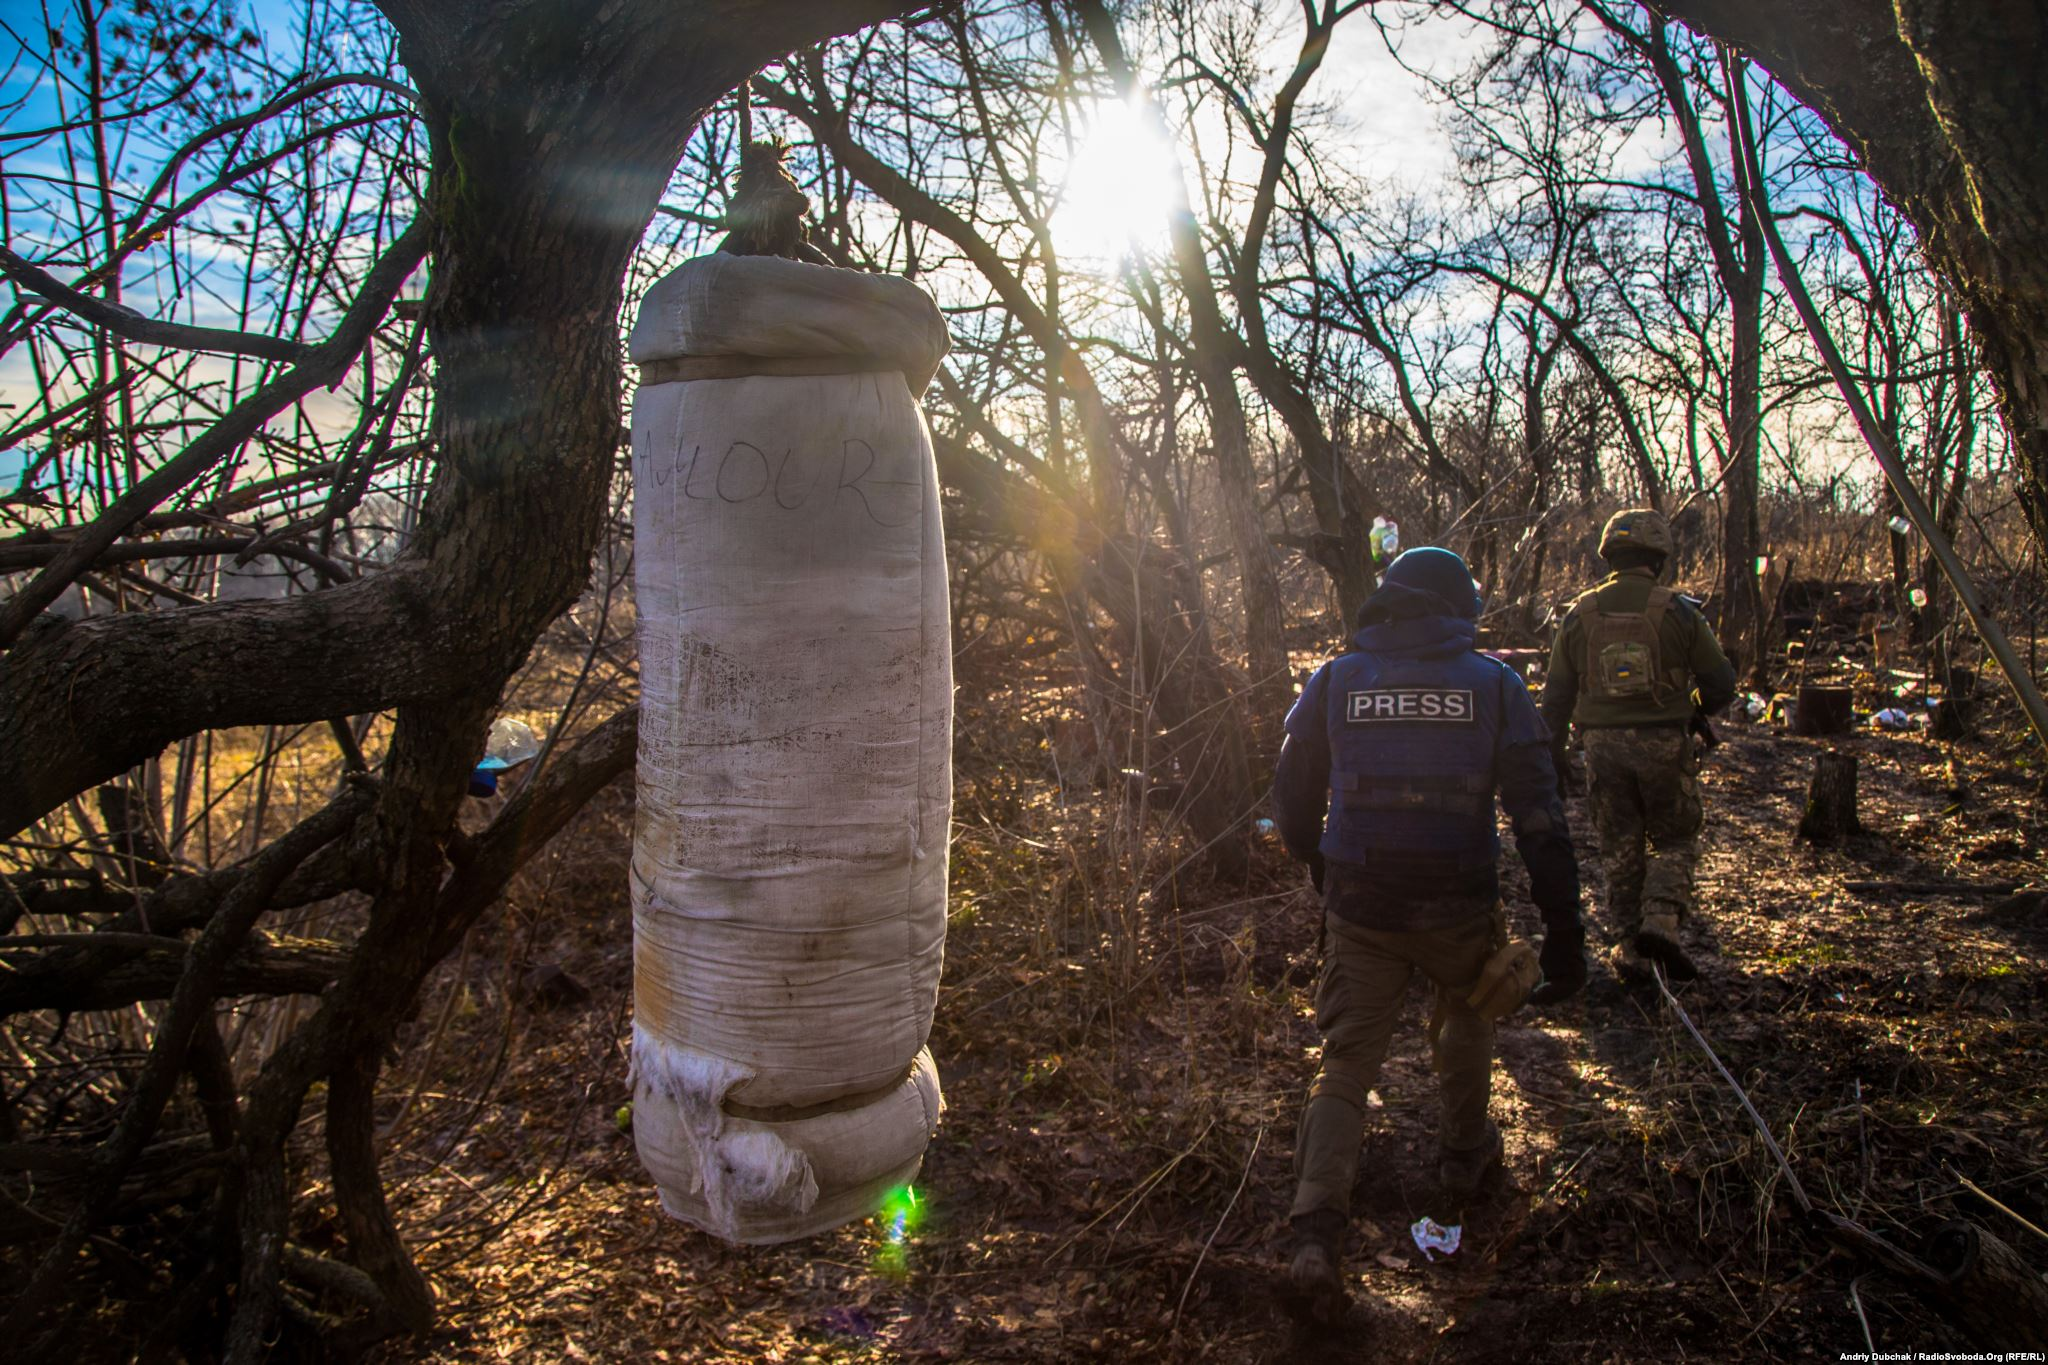 Hand-made punch bag in a wood lane. Near that improvised sports ground between trees, there are many mine craters. We also saw the remnants of an unexploded rocket-propelled grenade.) (photo by ukrainian military photographer Andriy Dubchak)